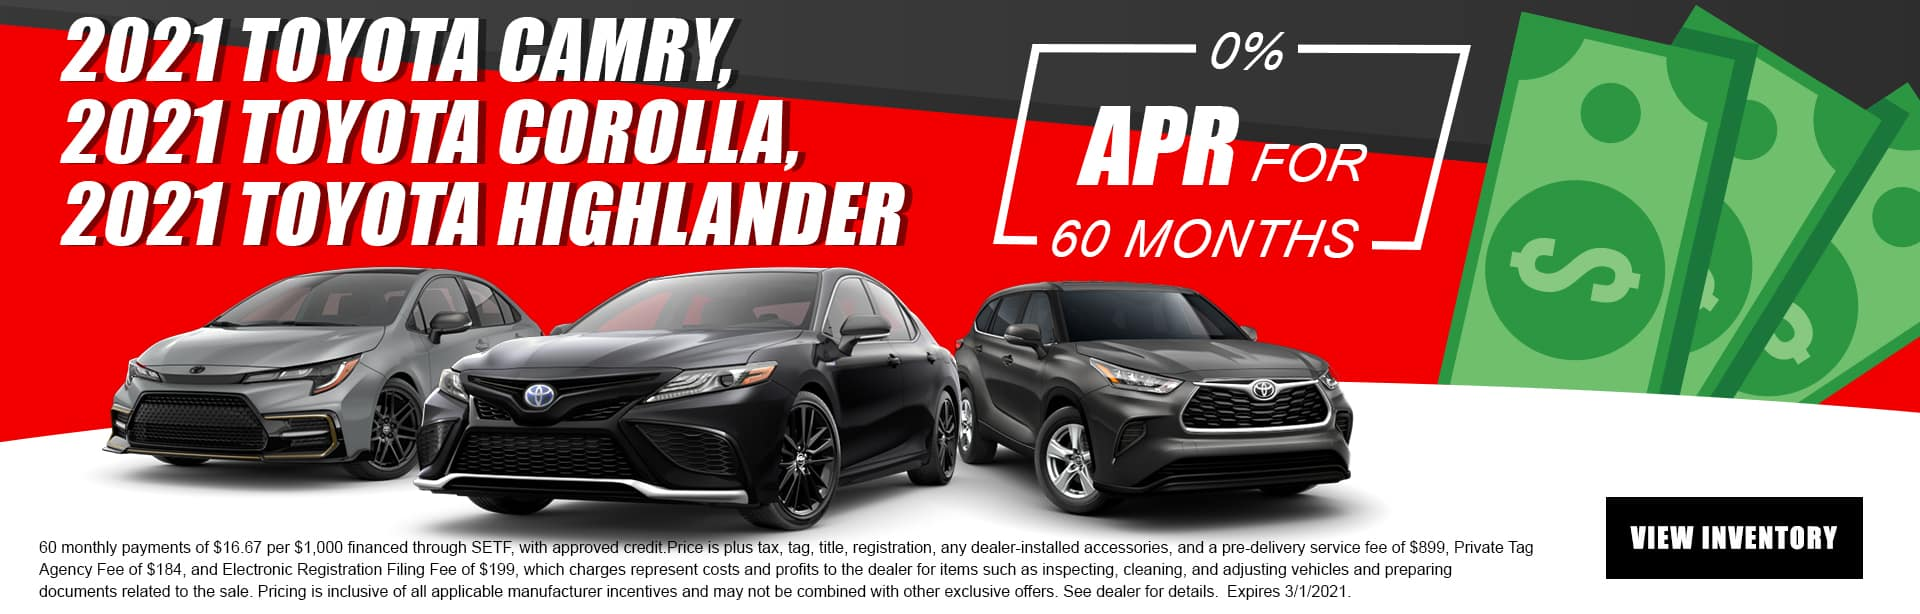 2021 Toyota Camry, 2021 Toyota Corolla, 2021 Toyota Highlander   0% APR For 60 Months